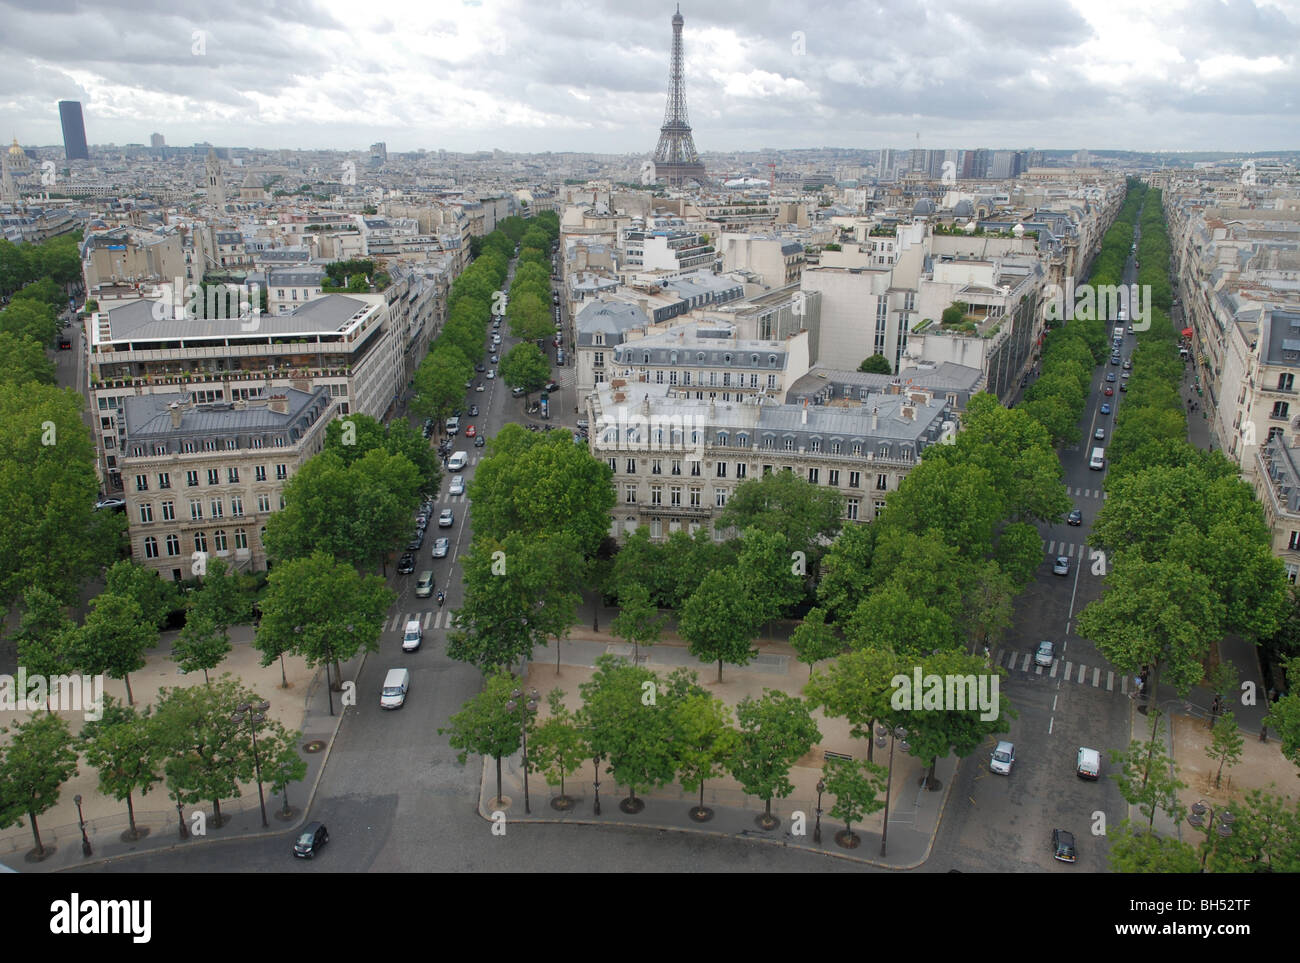 Paris: looking towards the Eiffel Tower from the top of the Arc de Triomphe - Stock Image